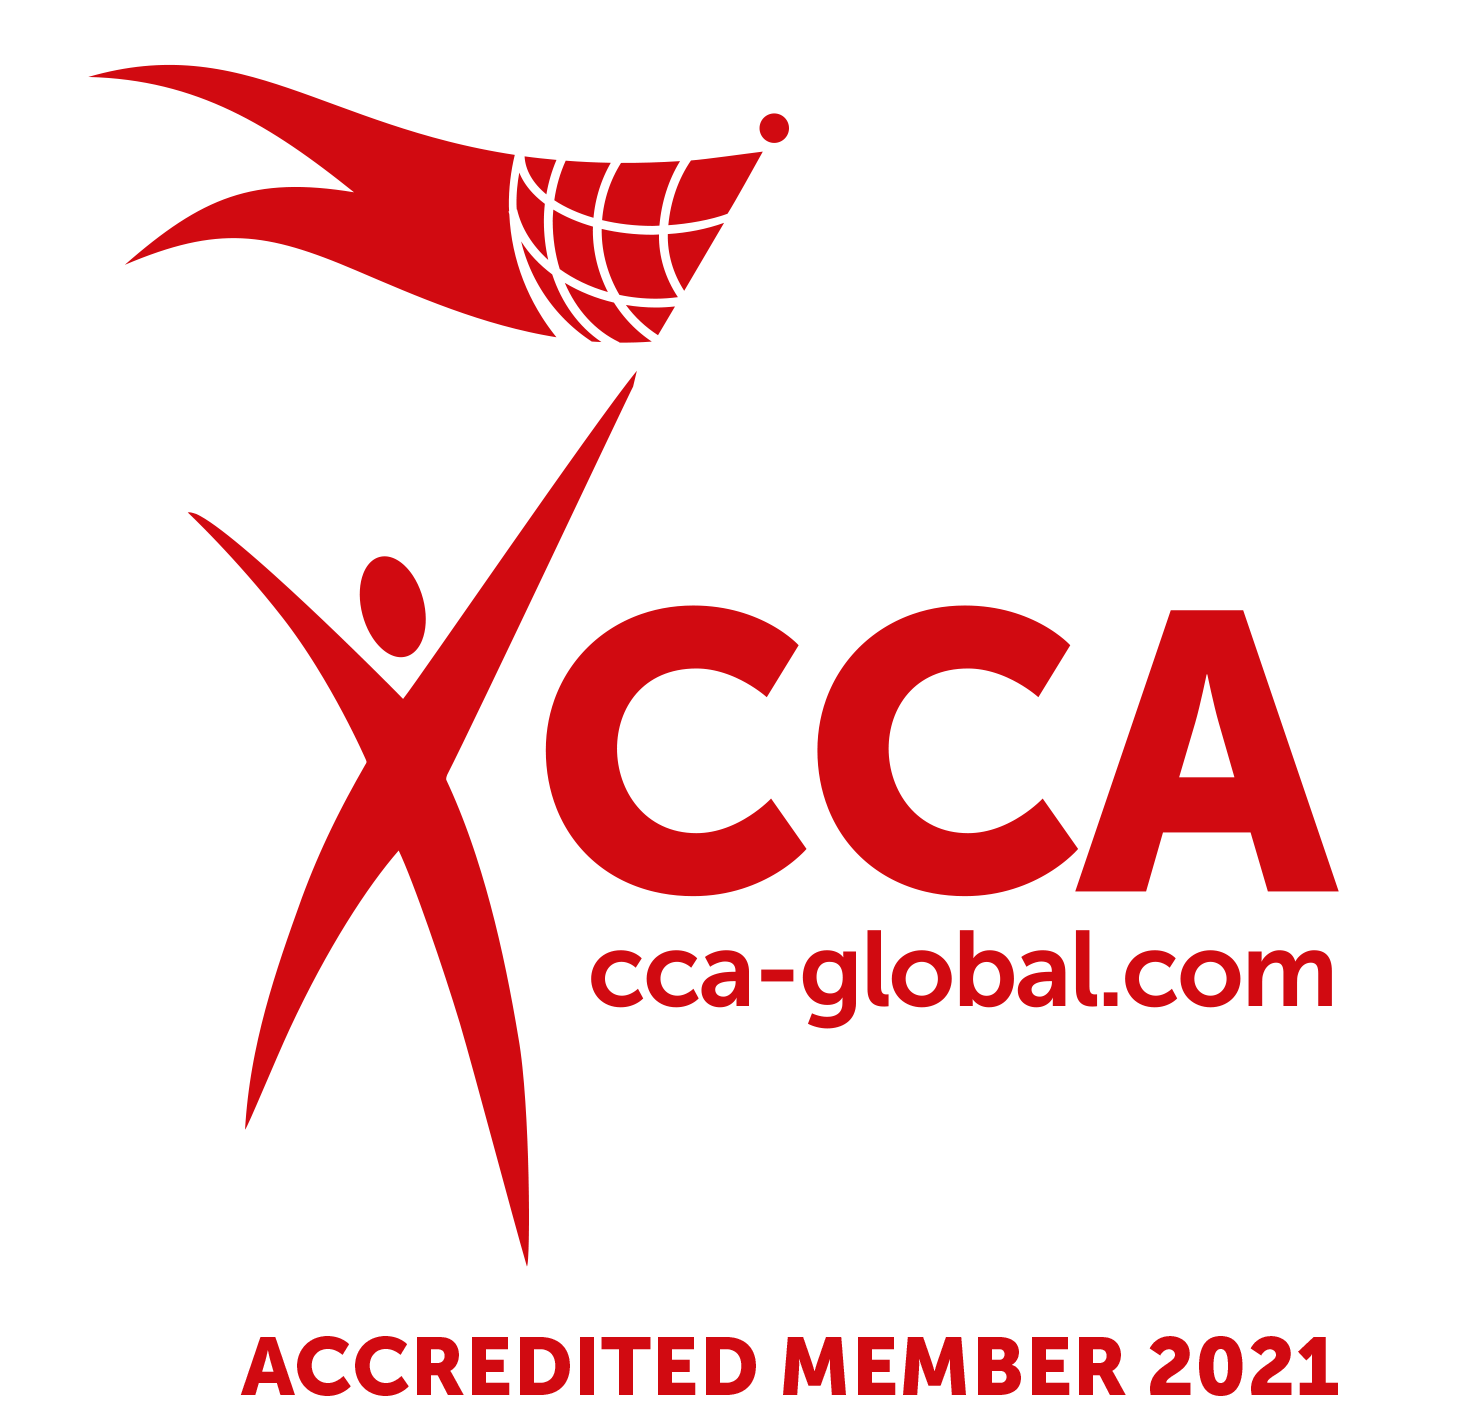 cca-accredited-2021.png